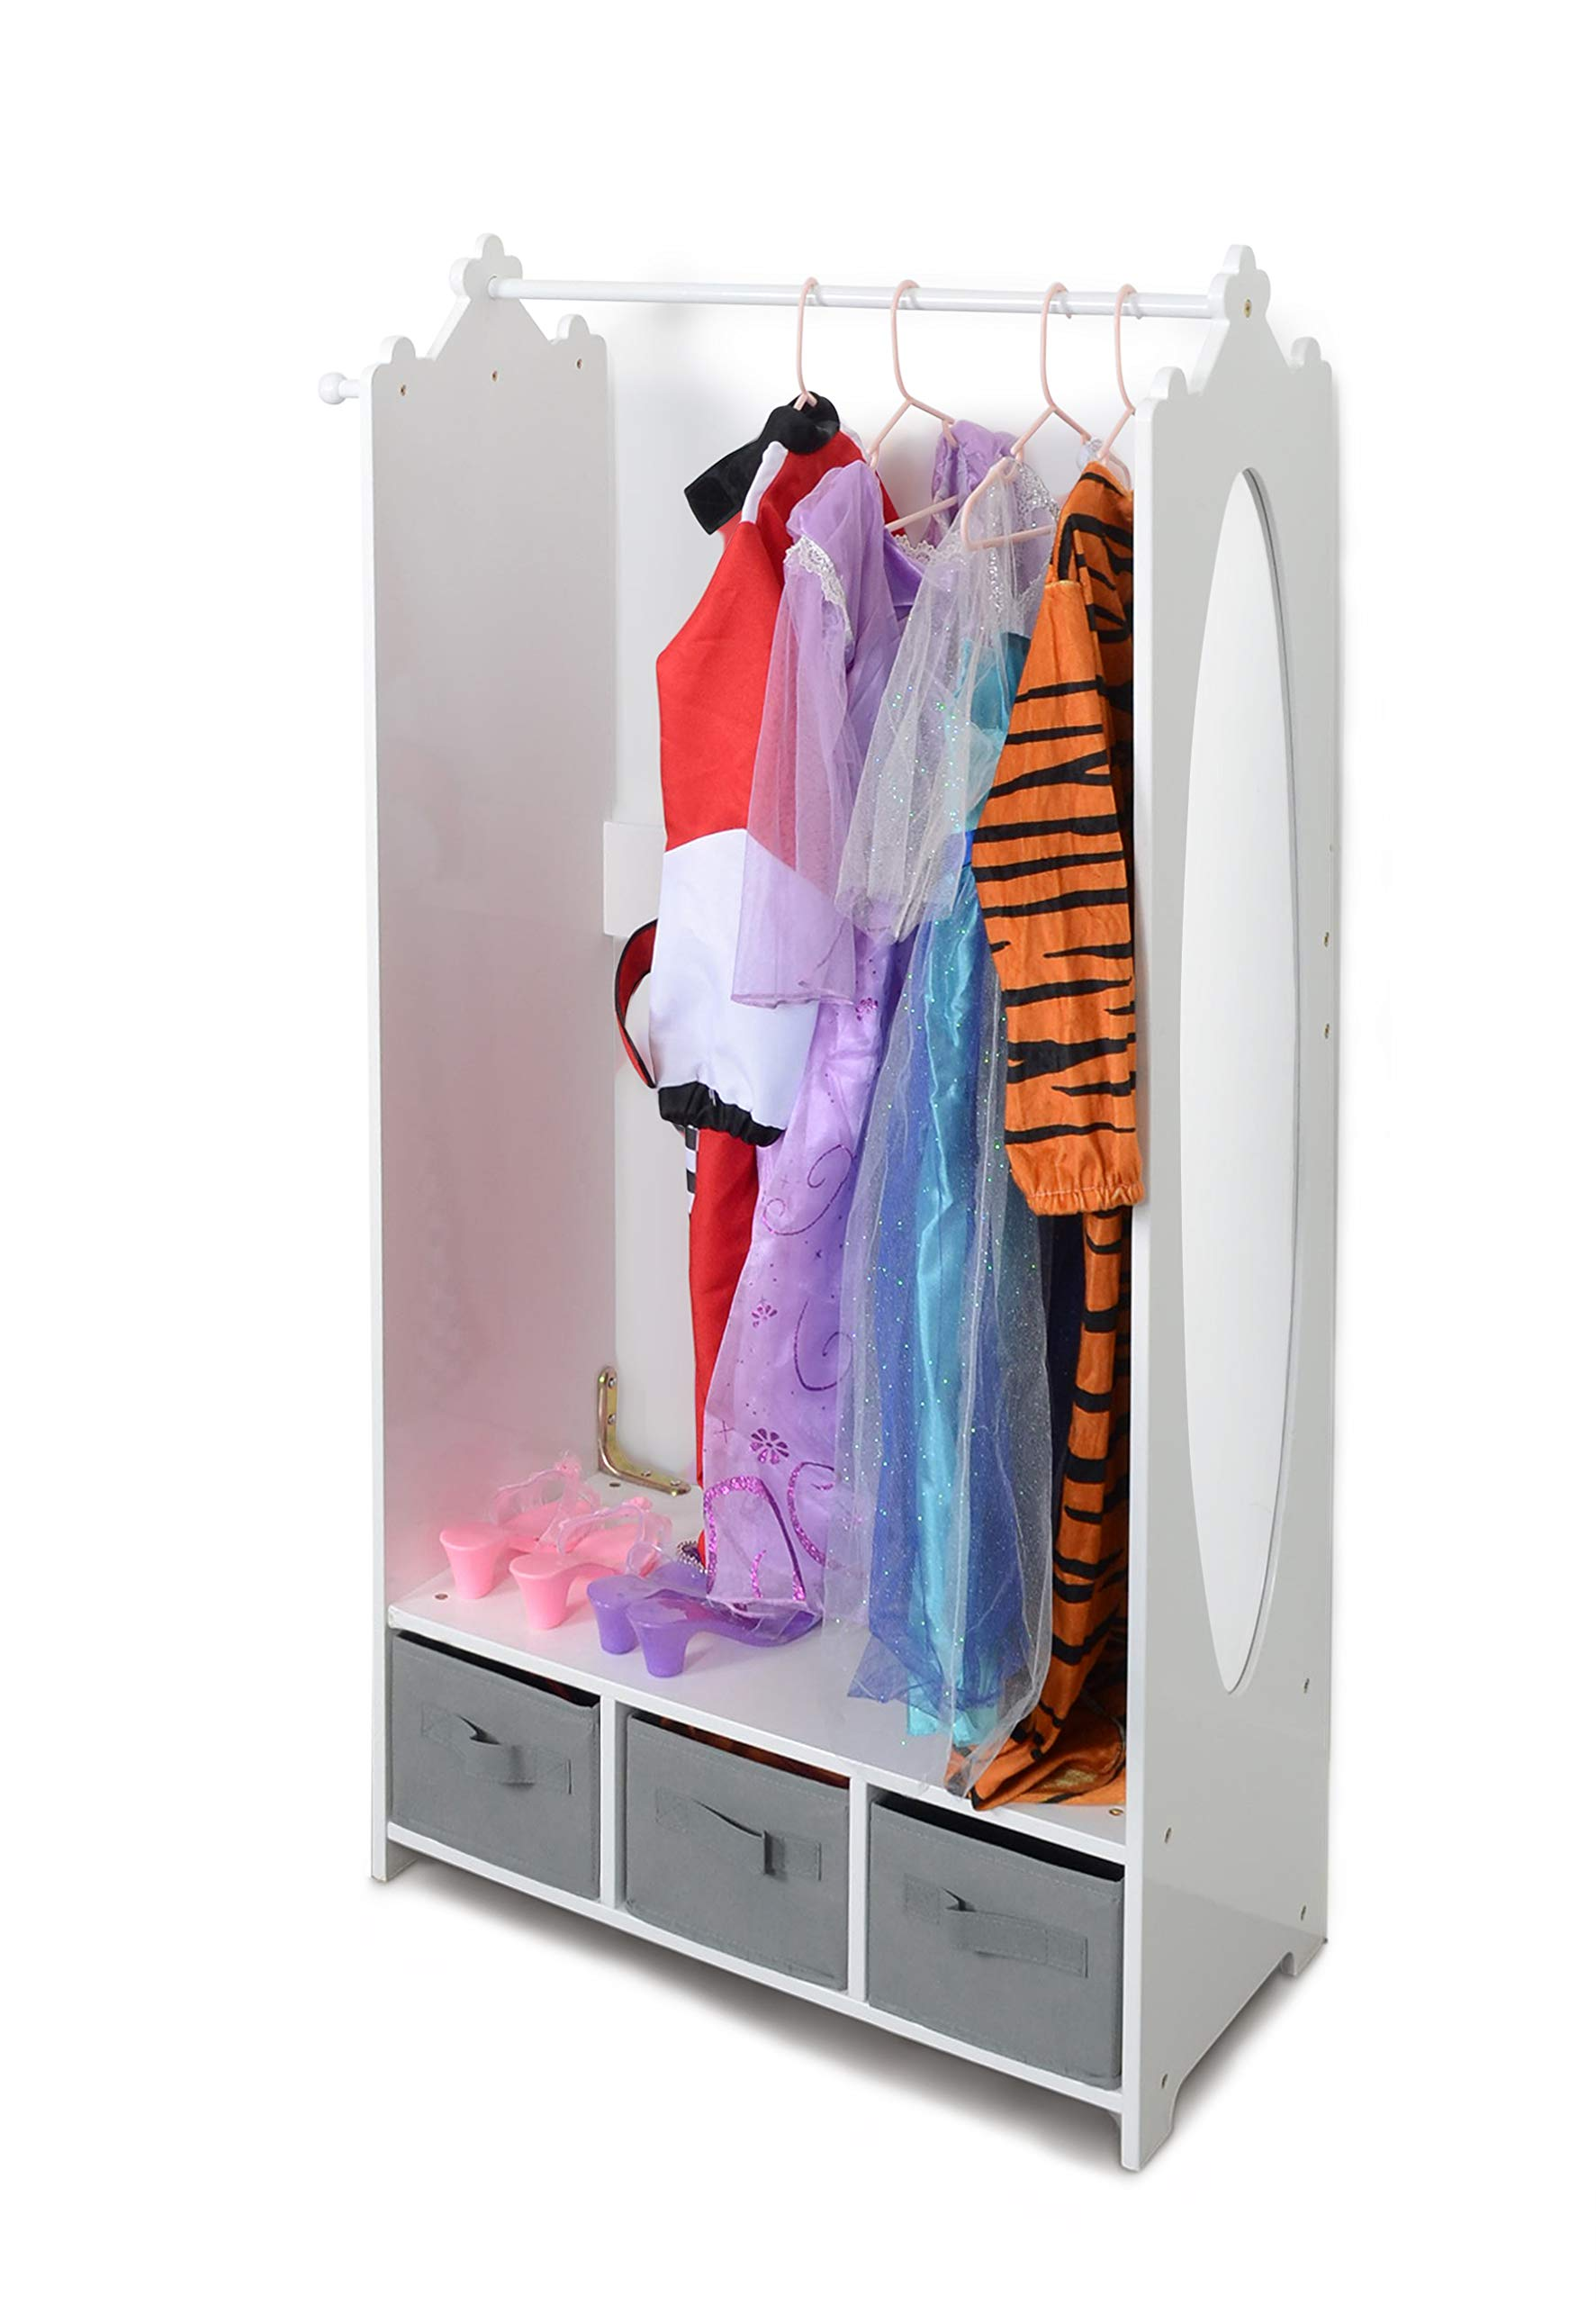 Milliard Dress Up Storage Kids Costume Organizer Center Open Hanging Armoire Closet Unit Furniture for Dramatic Play with Mirror Baskets and Hooks